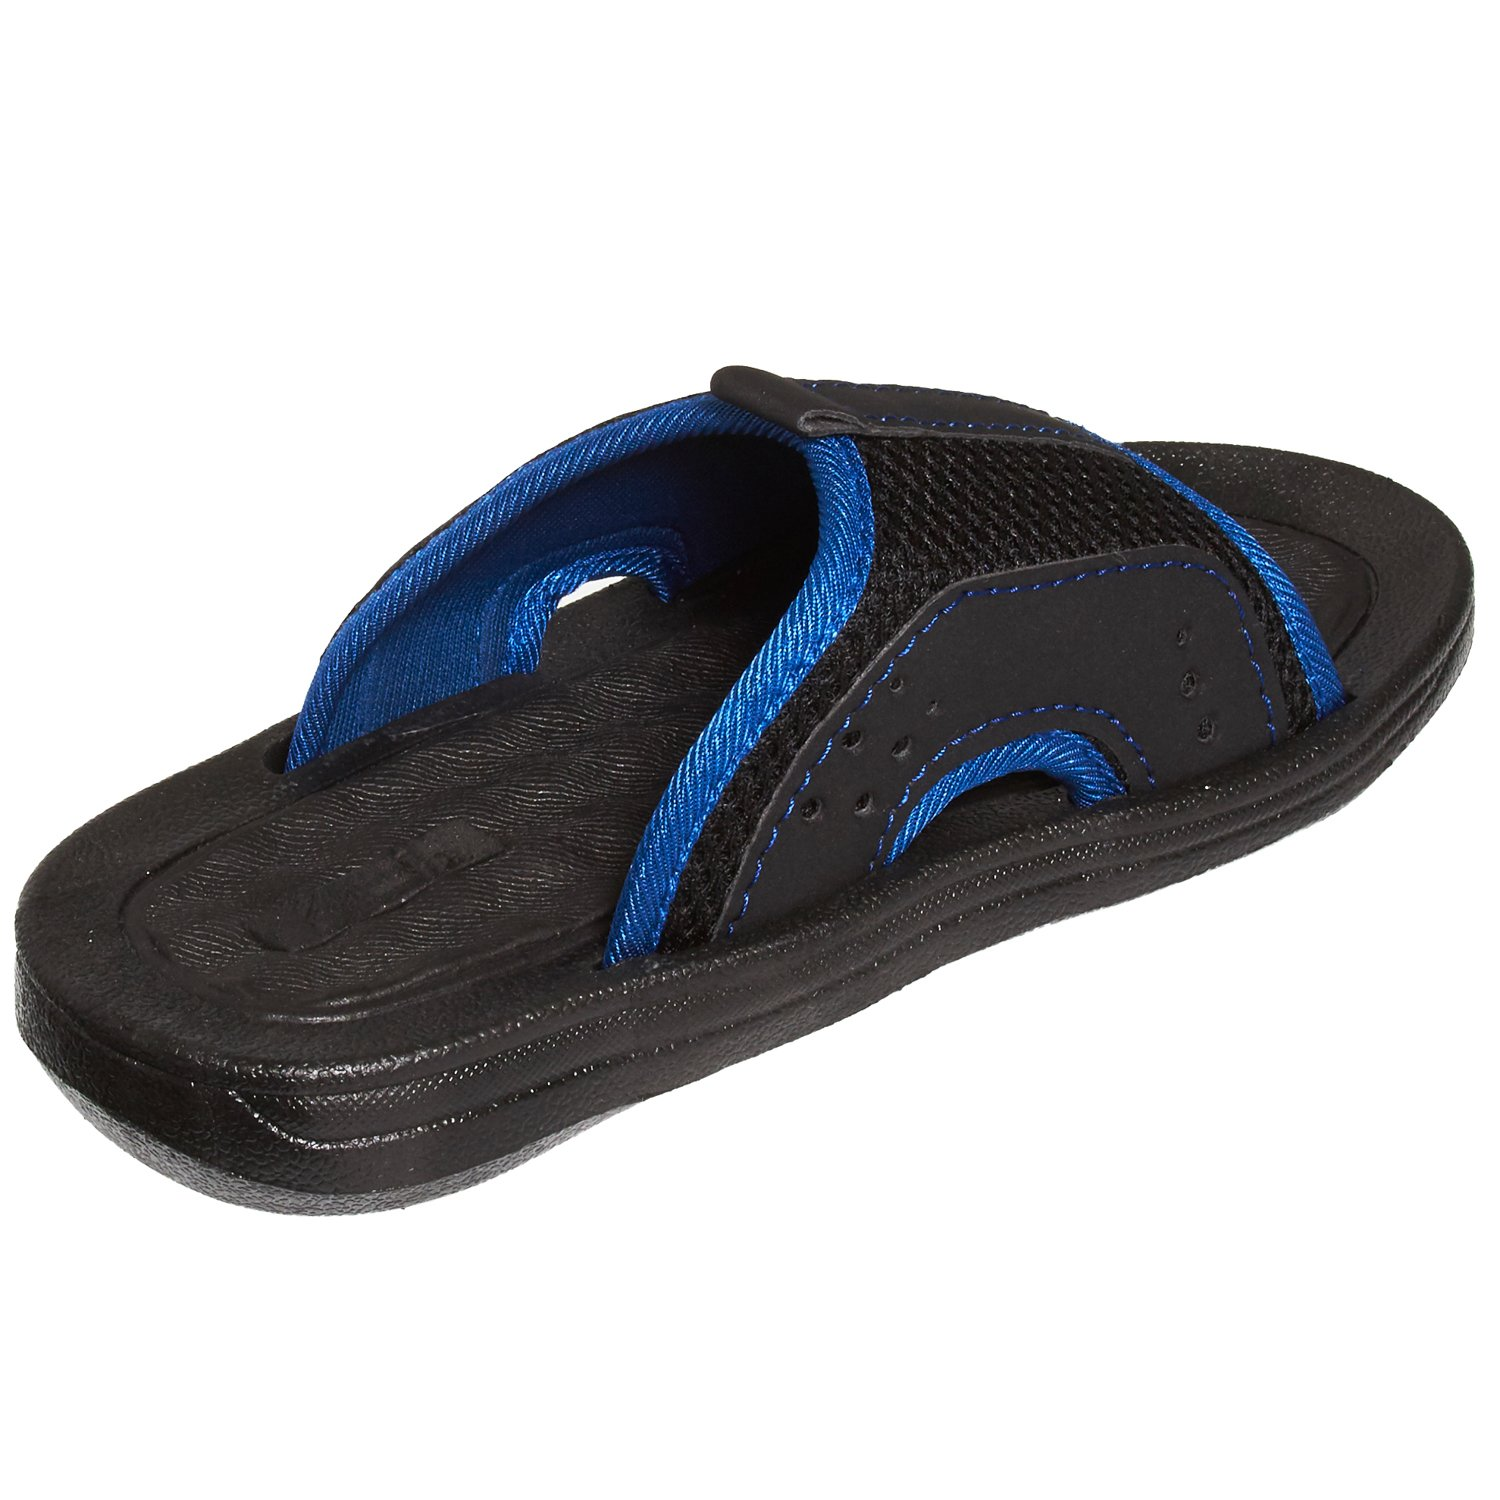 See More Colors and Sizes Skysole Boys Open Toe Rugged Mesh Slide Sandals